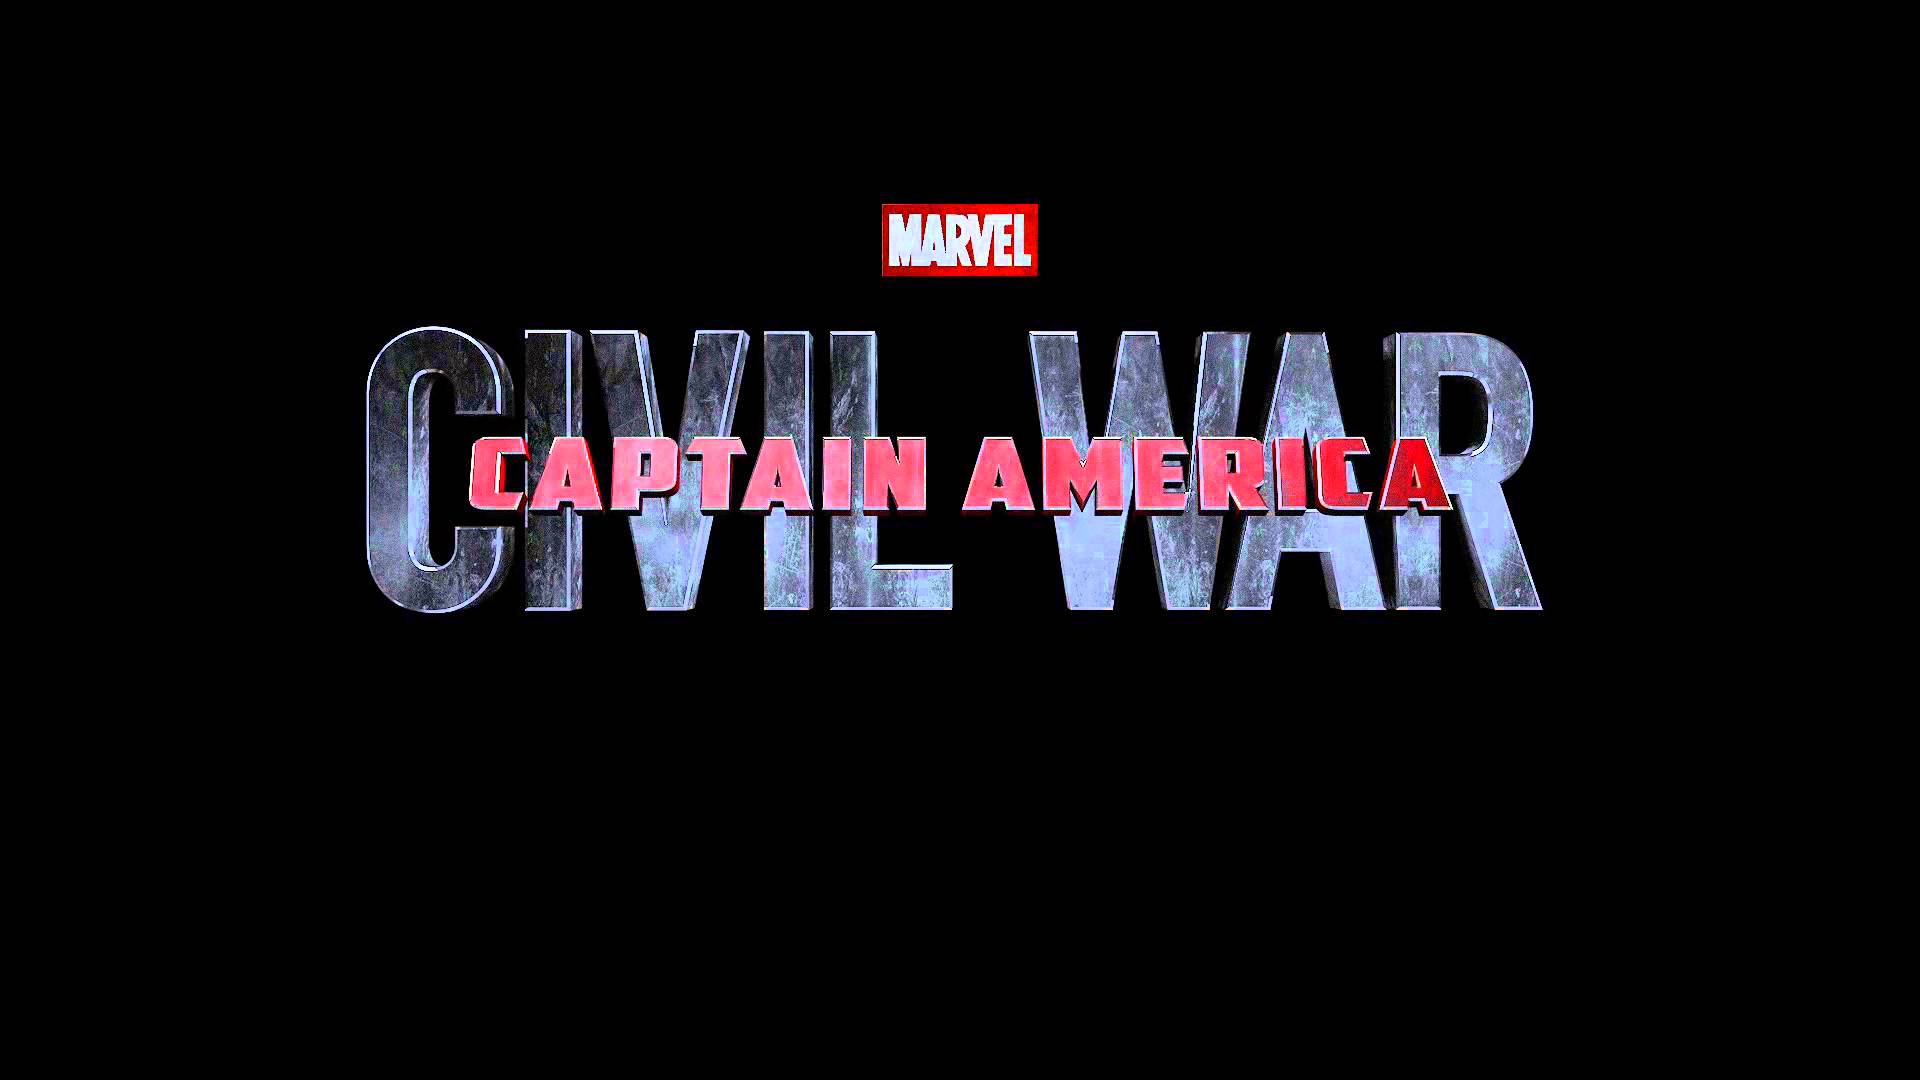 Captain America: Civil War wallpapers High Resolution and Quality ...